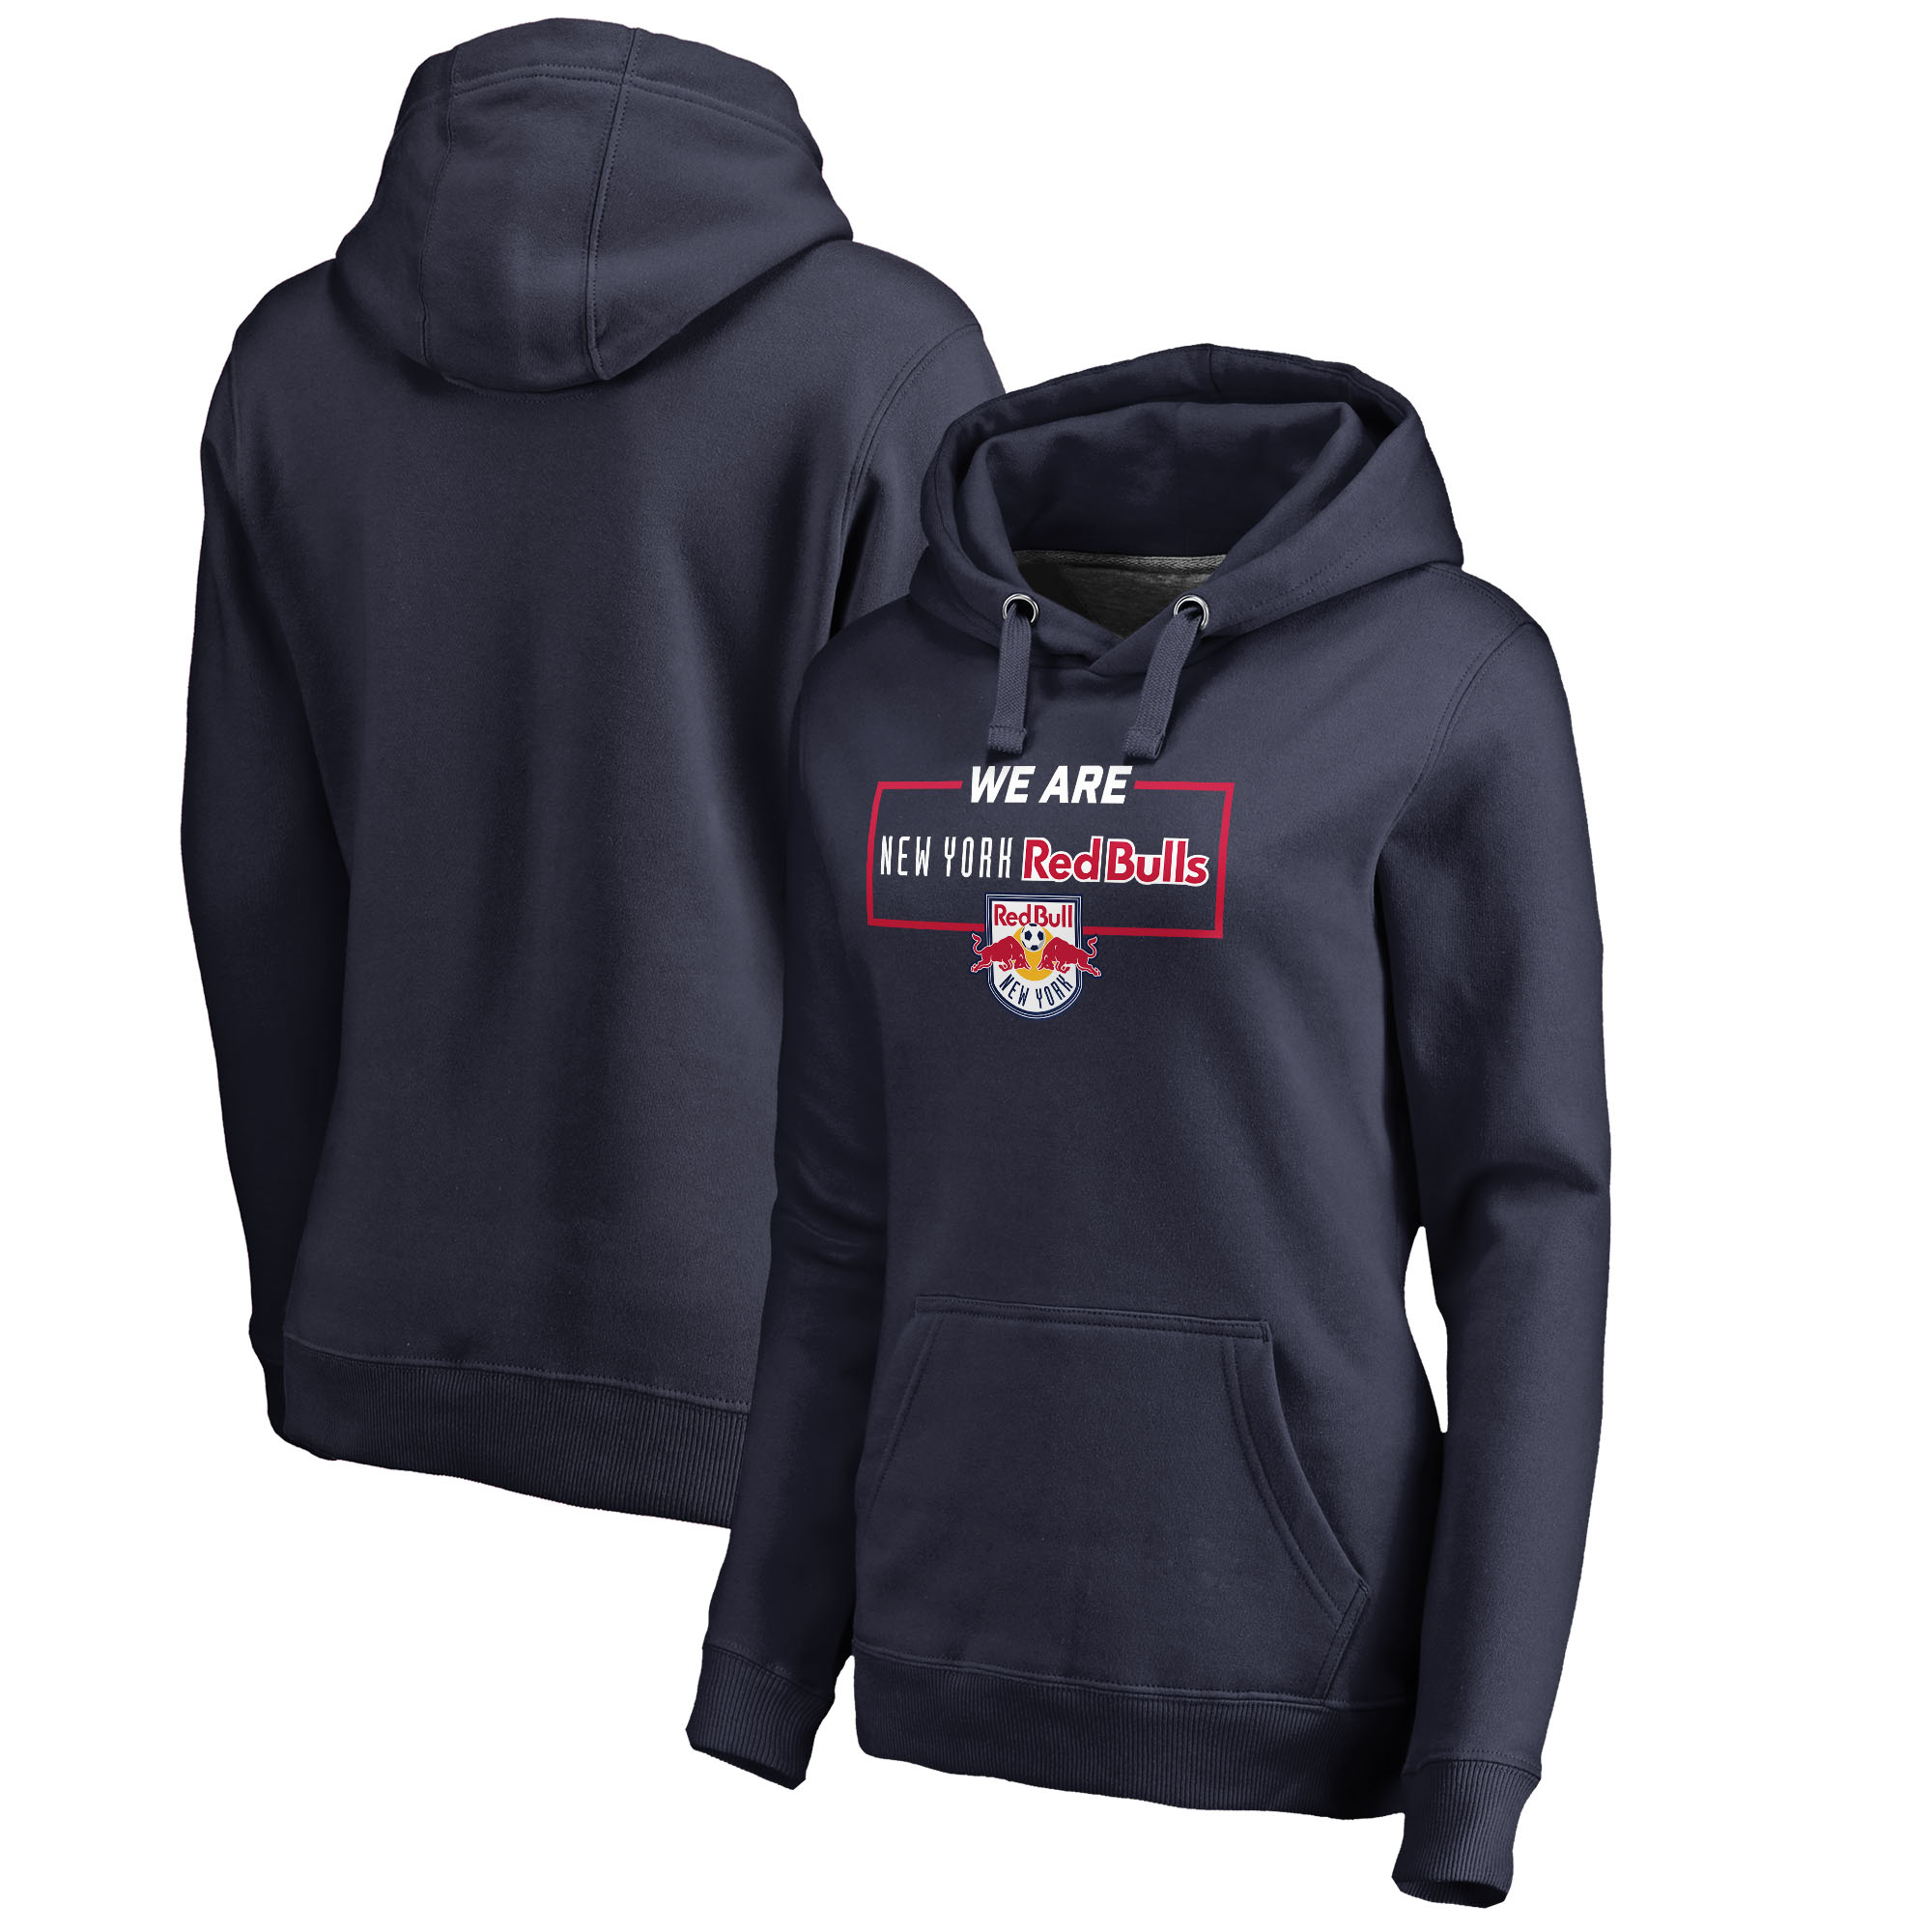 New York Red Bulls Fanatics Branded Women's We Are Pullover Hoodie - Navy